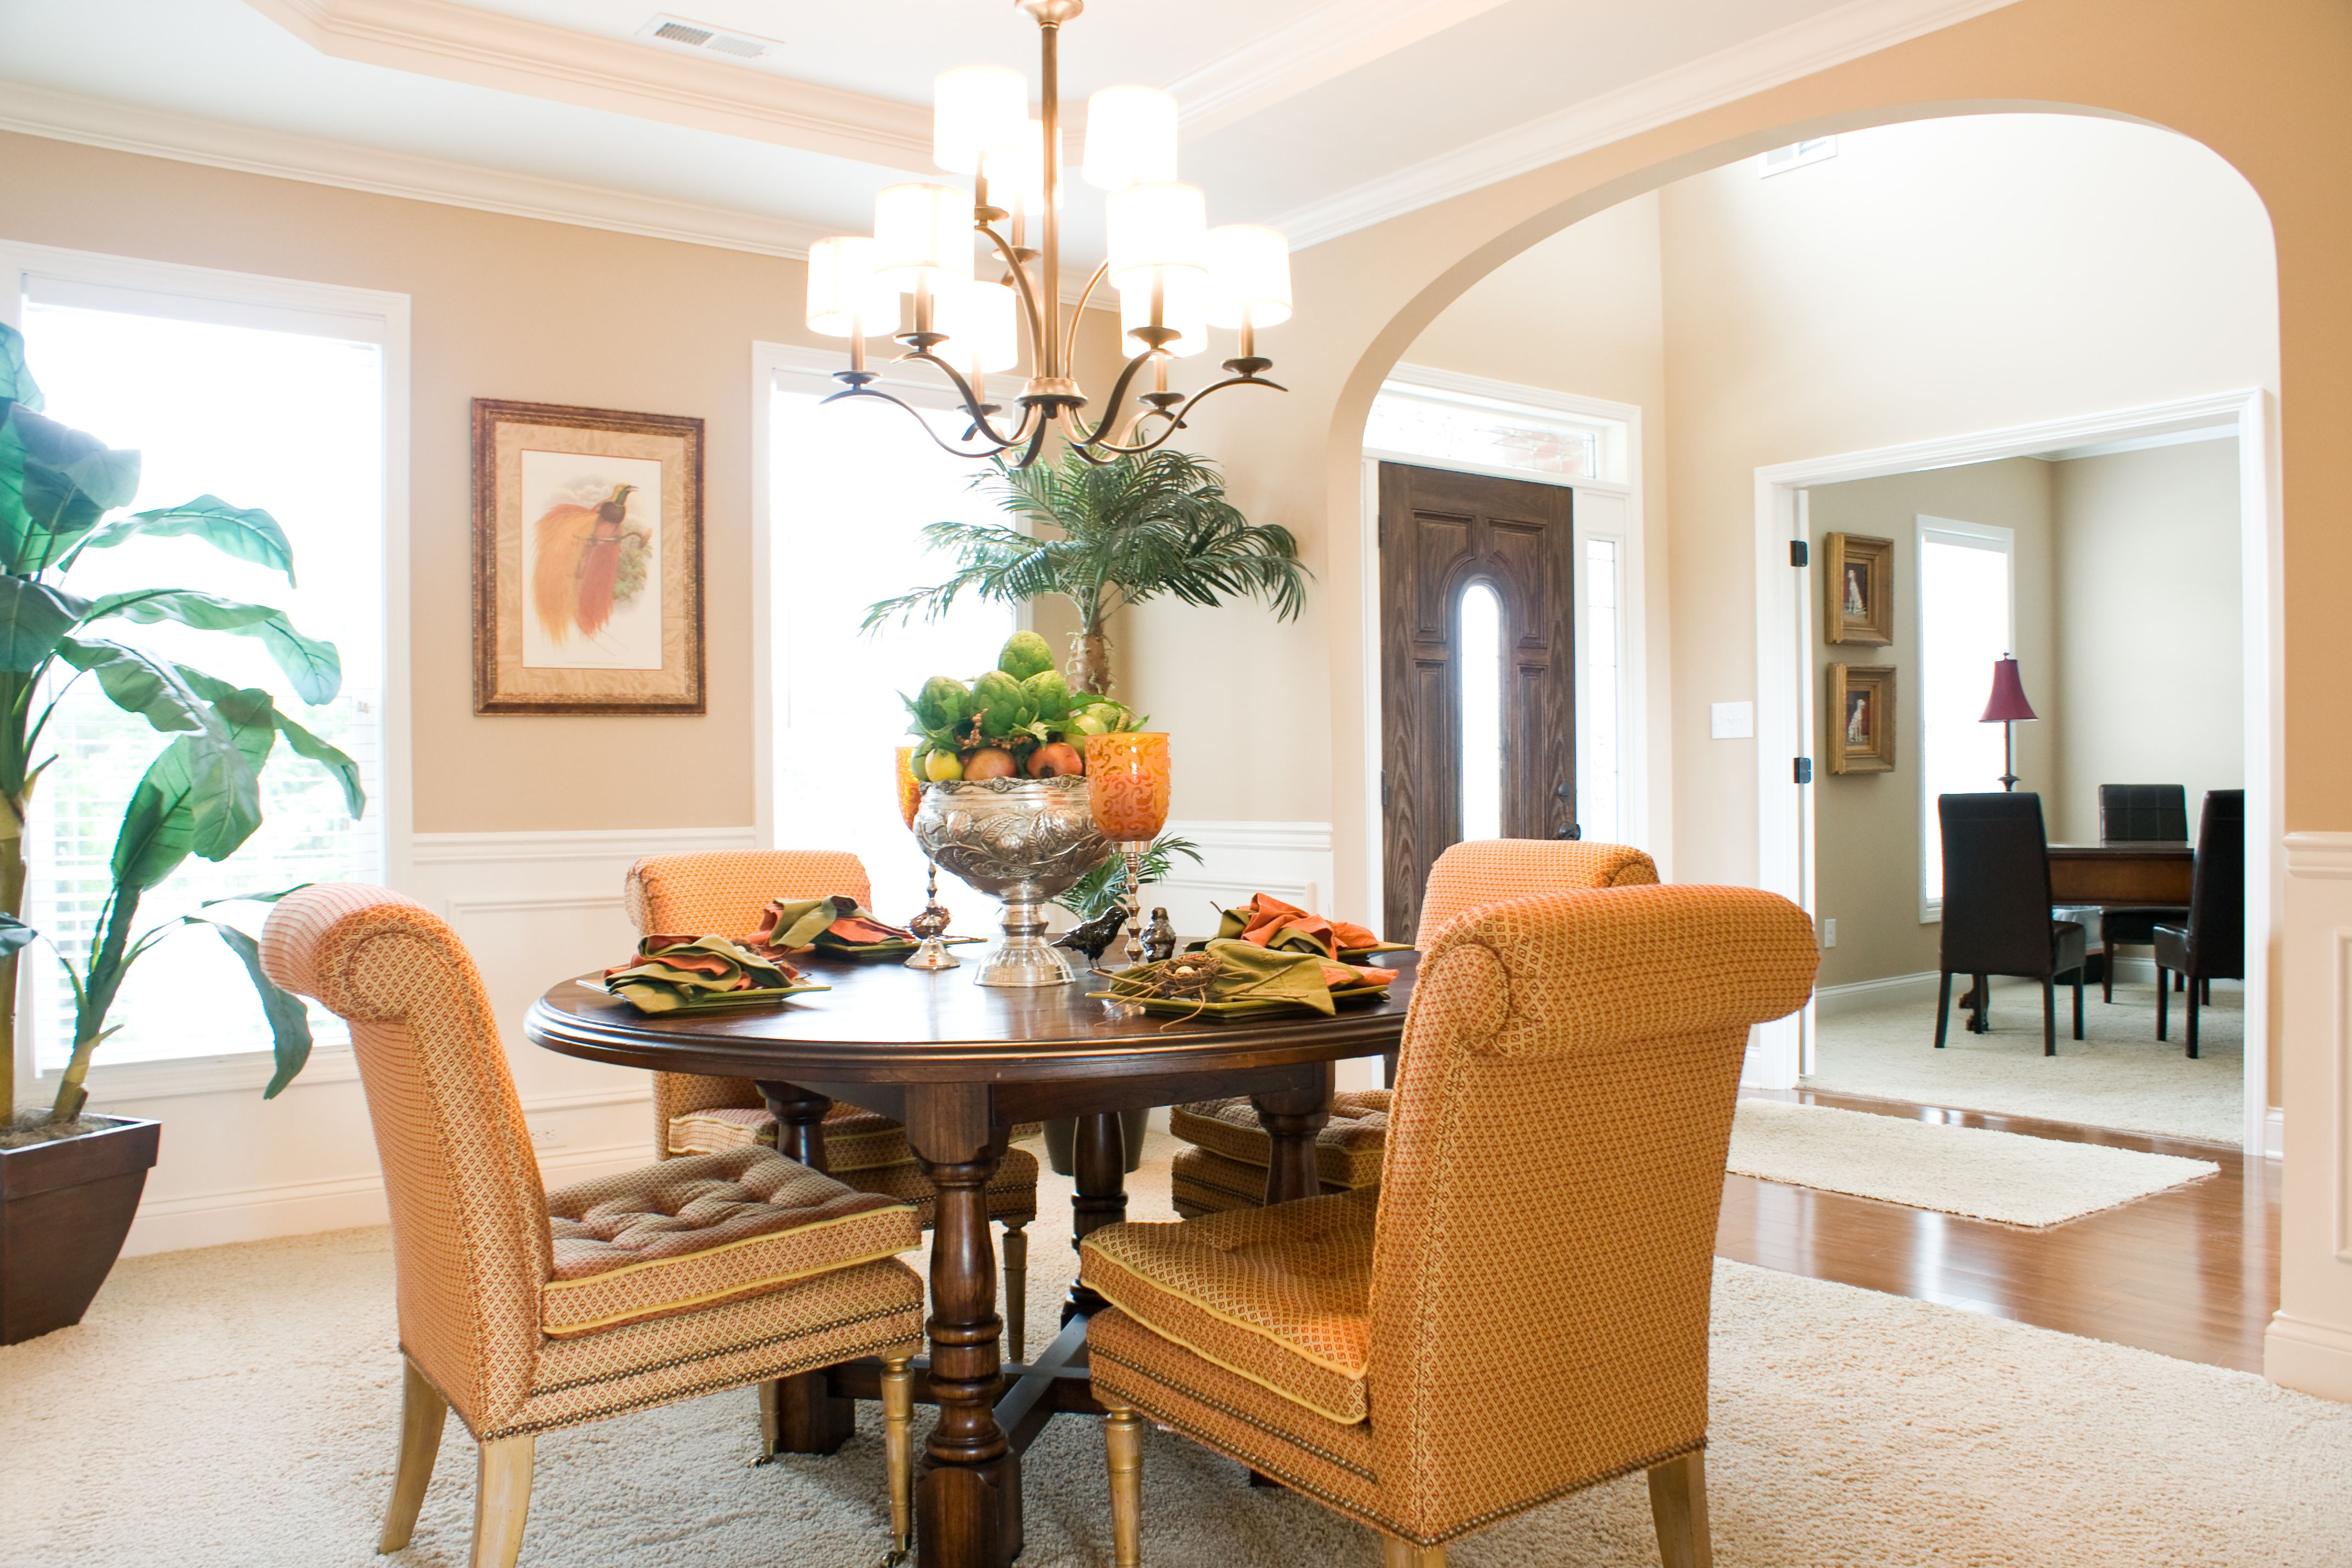 Garden Walk Dining: Formal Dining Room Of Ball Homes' Hudson Model Home